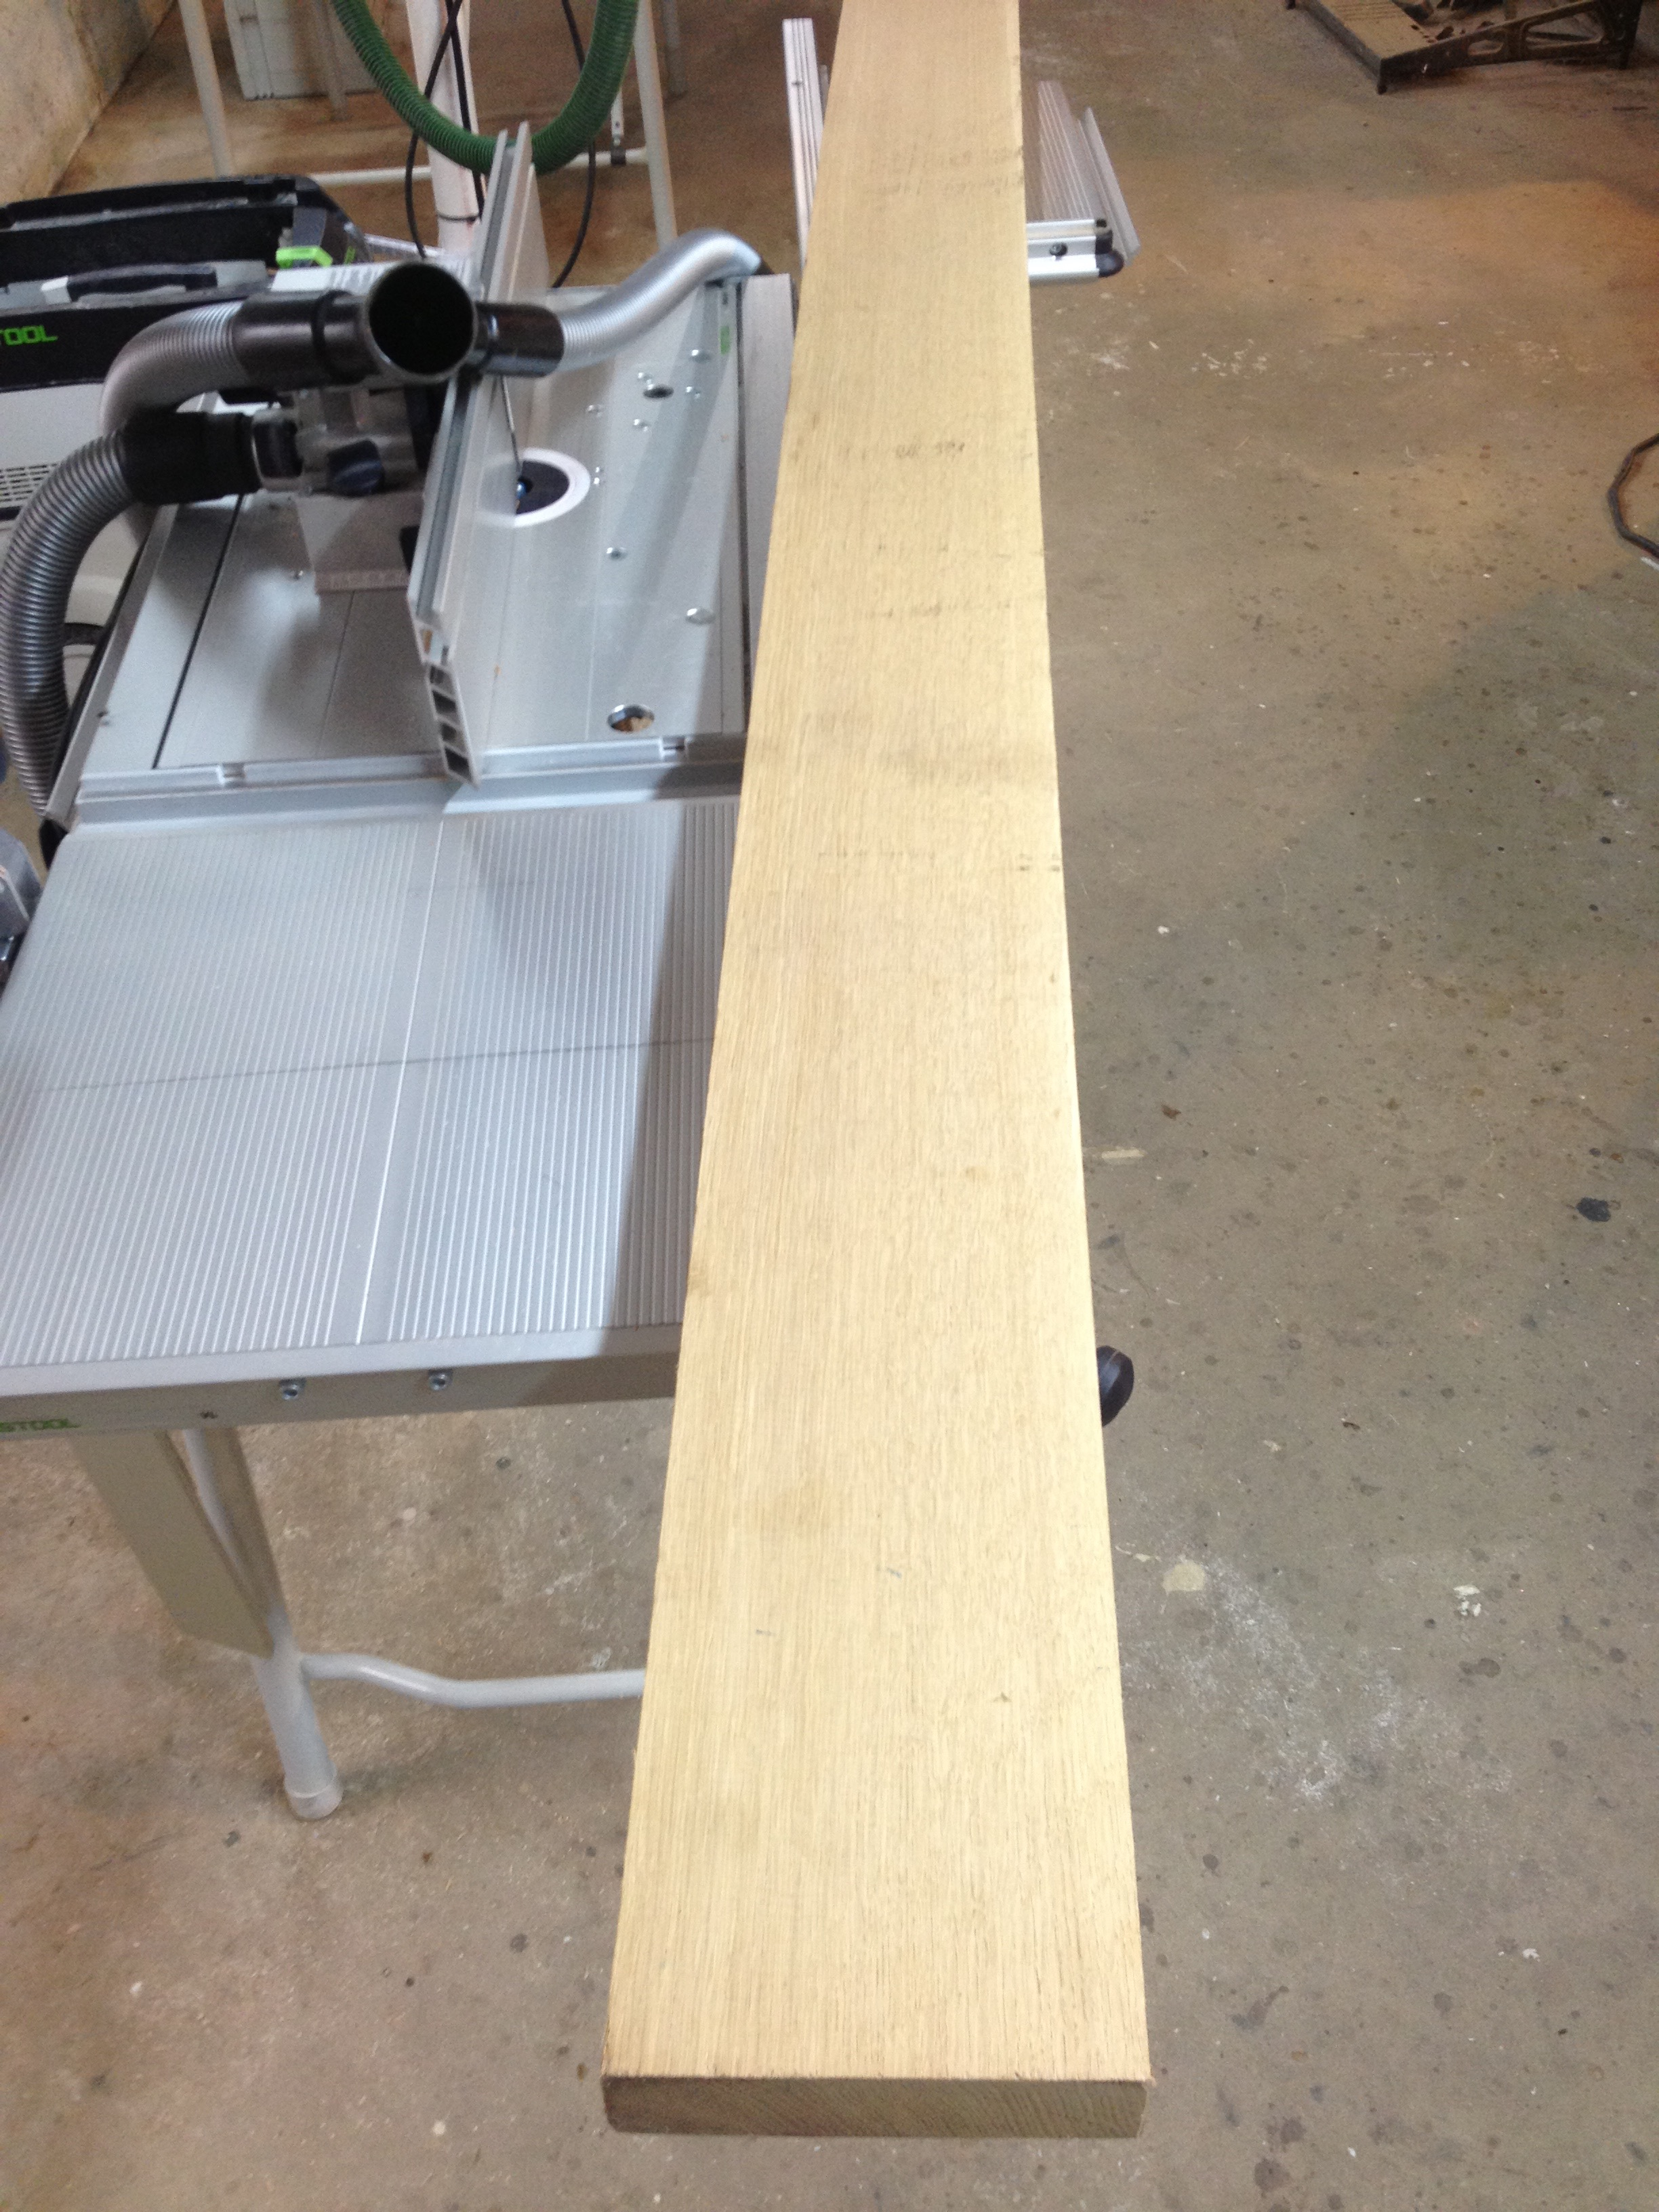 Benchtop Jointers for Site Work?-img_1991.jpg